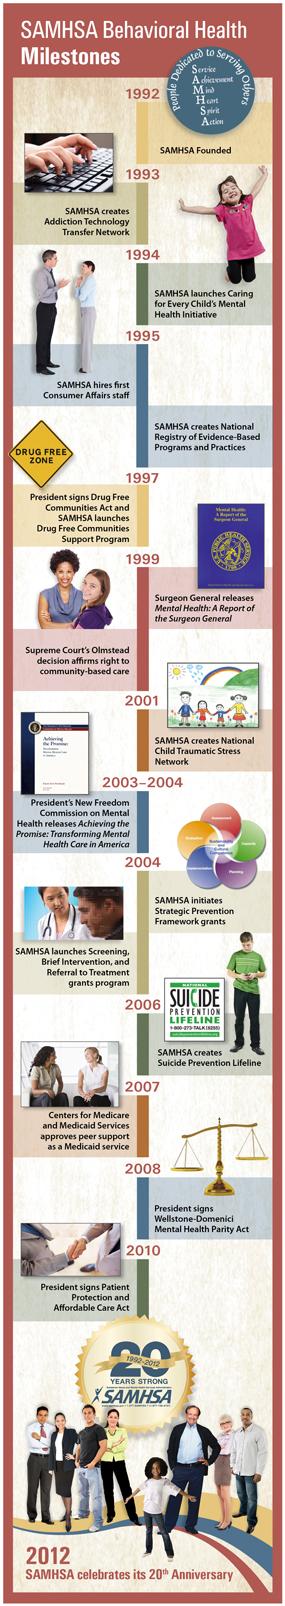 A graphic featuring SAMHSA Behavioral Health Milestones between 1992 and 2012